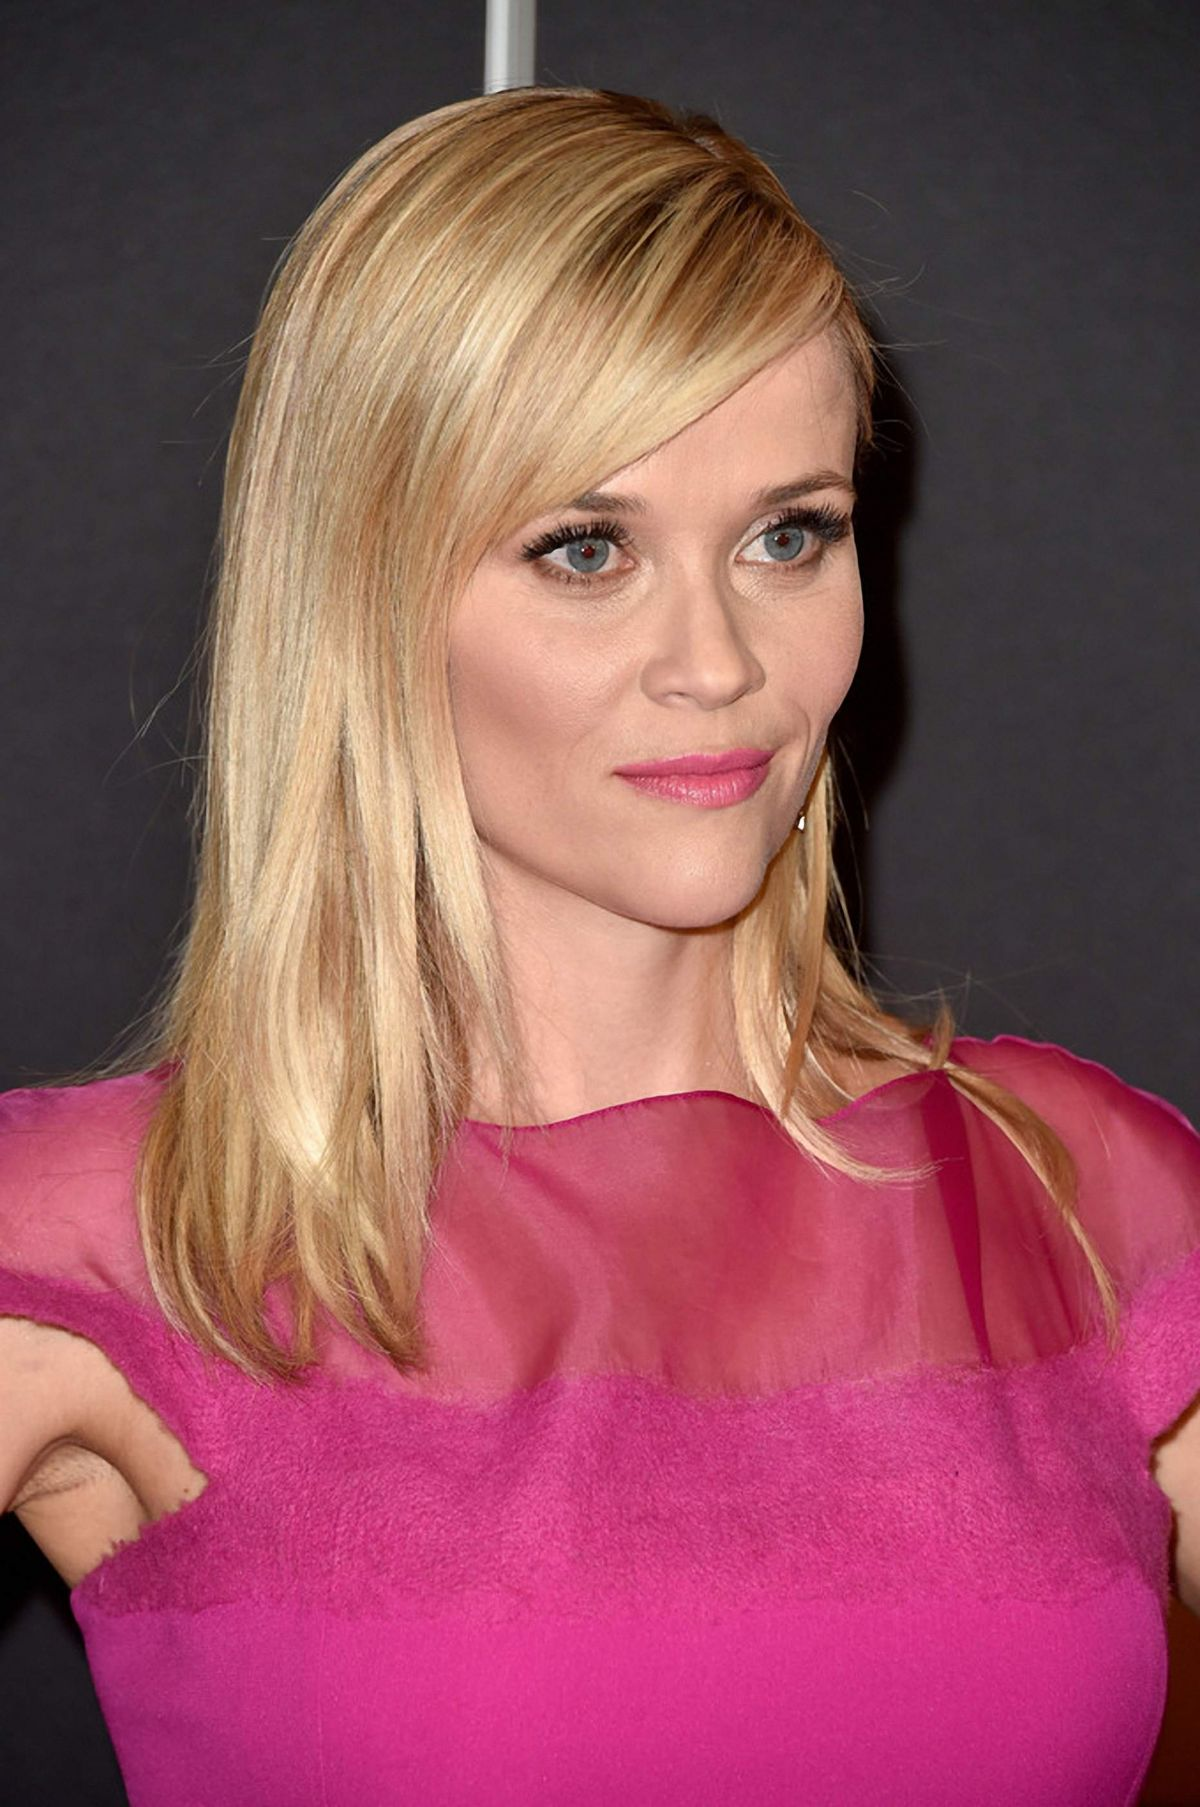 Celebrity Pics: Reese Witherspoon